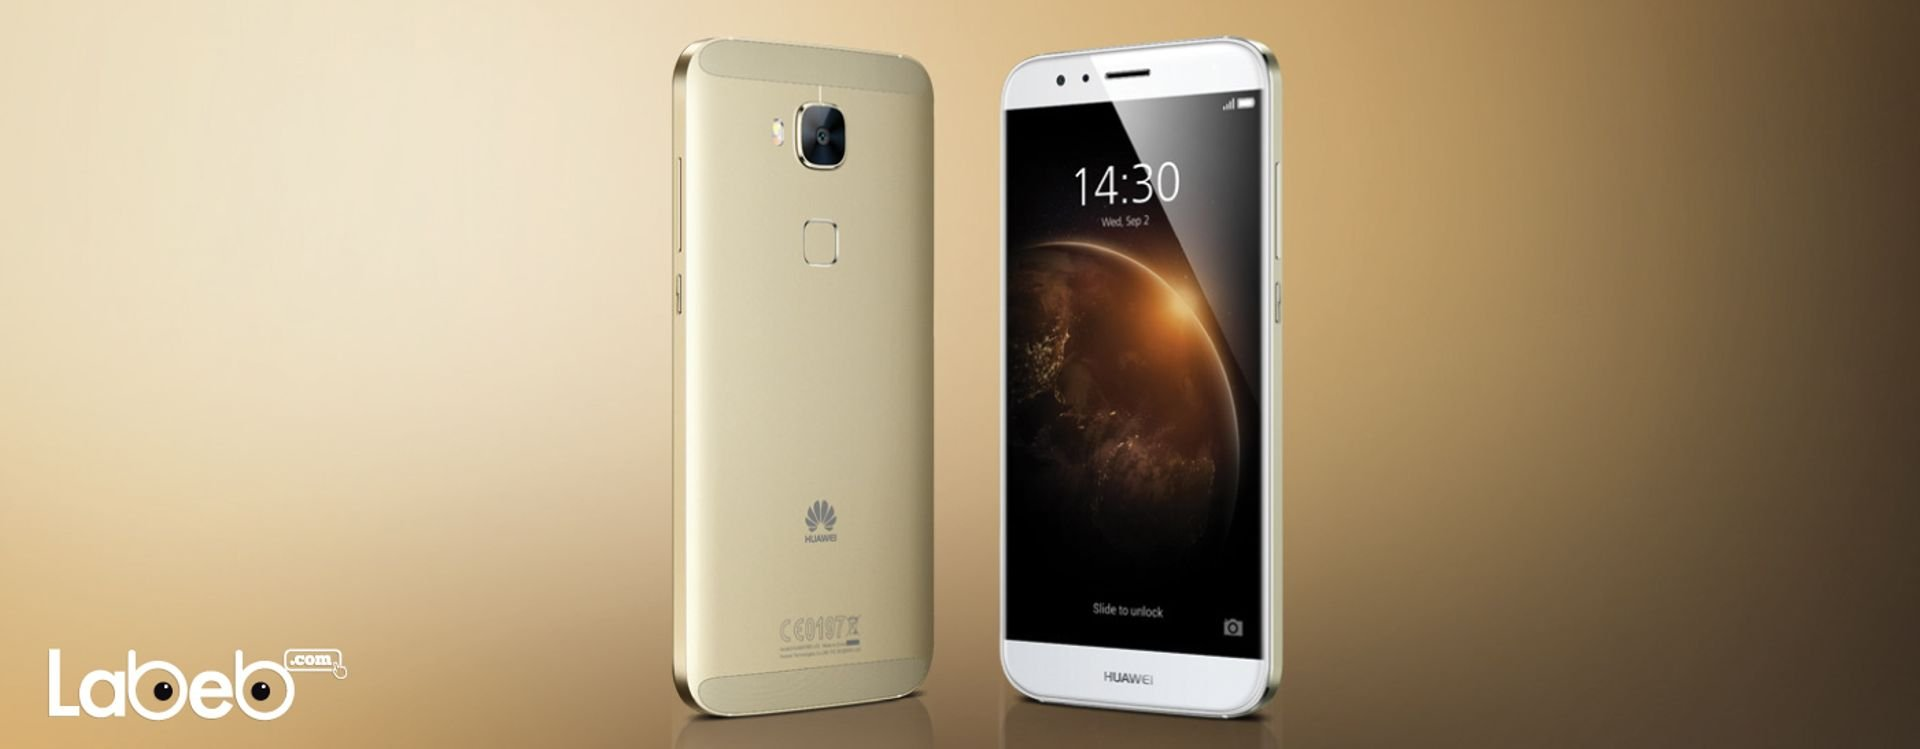 Huawei G 7 Plus, High Specifications, Affordable Prices